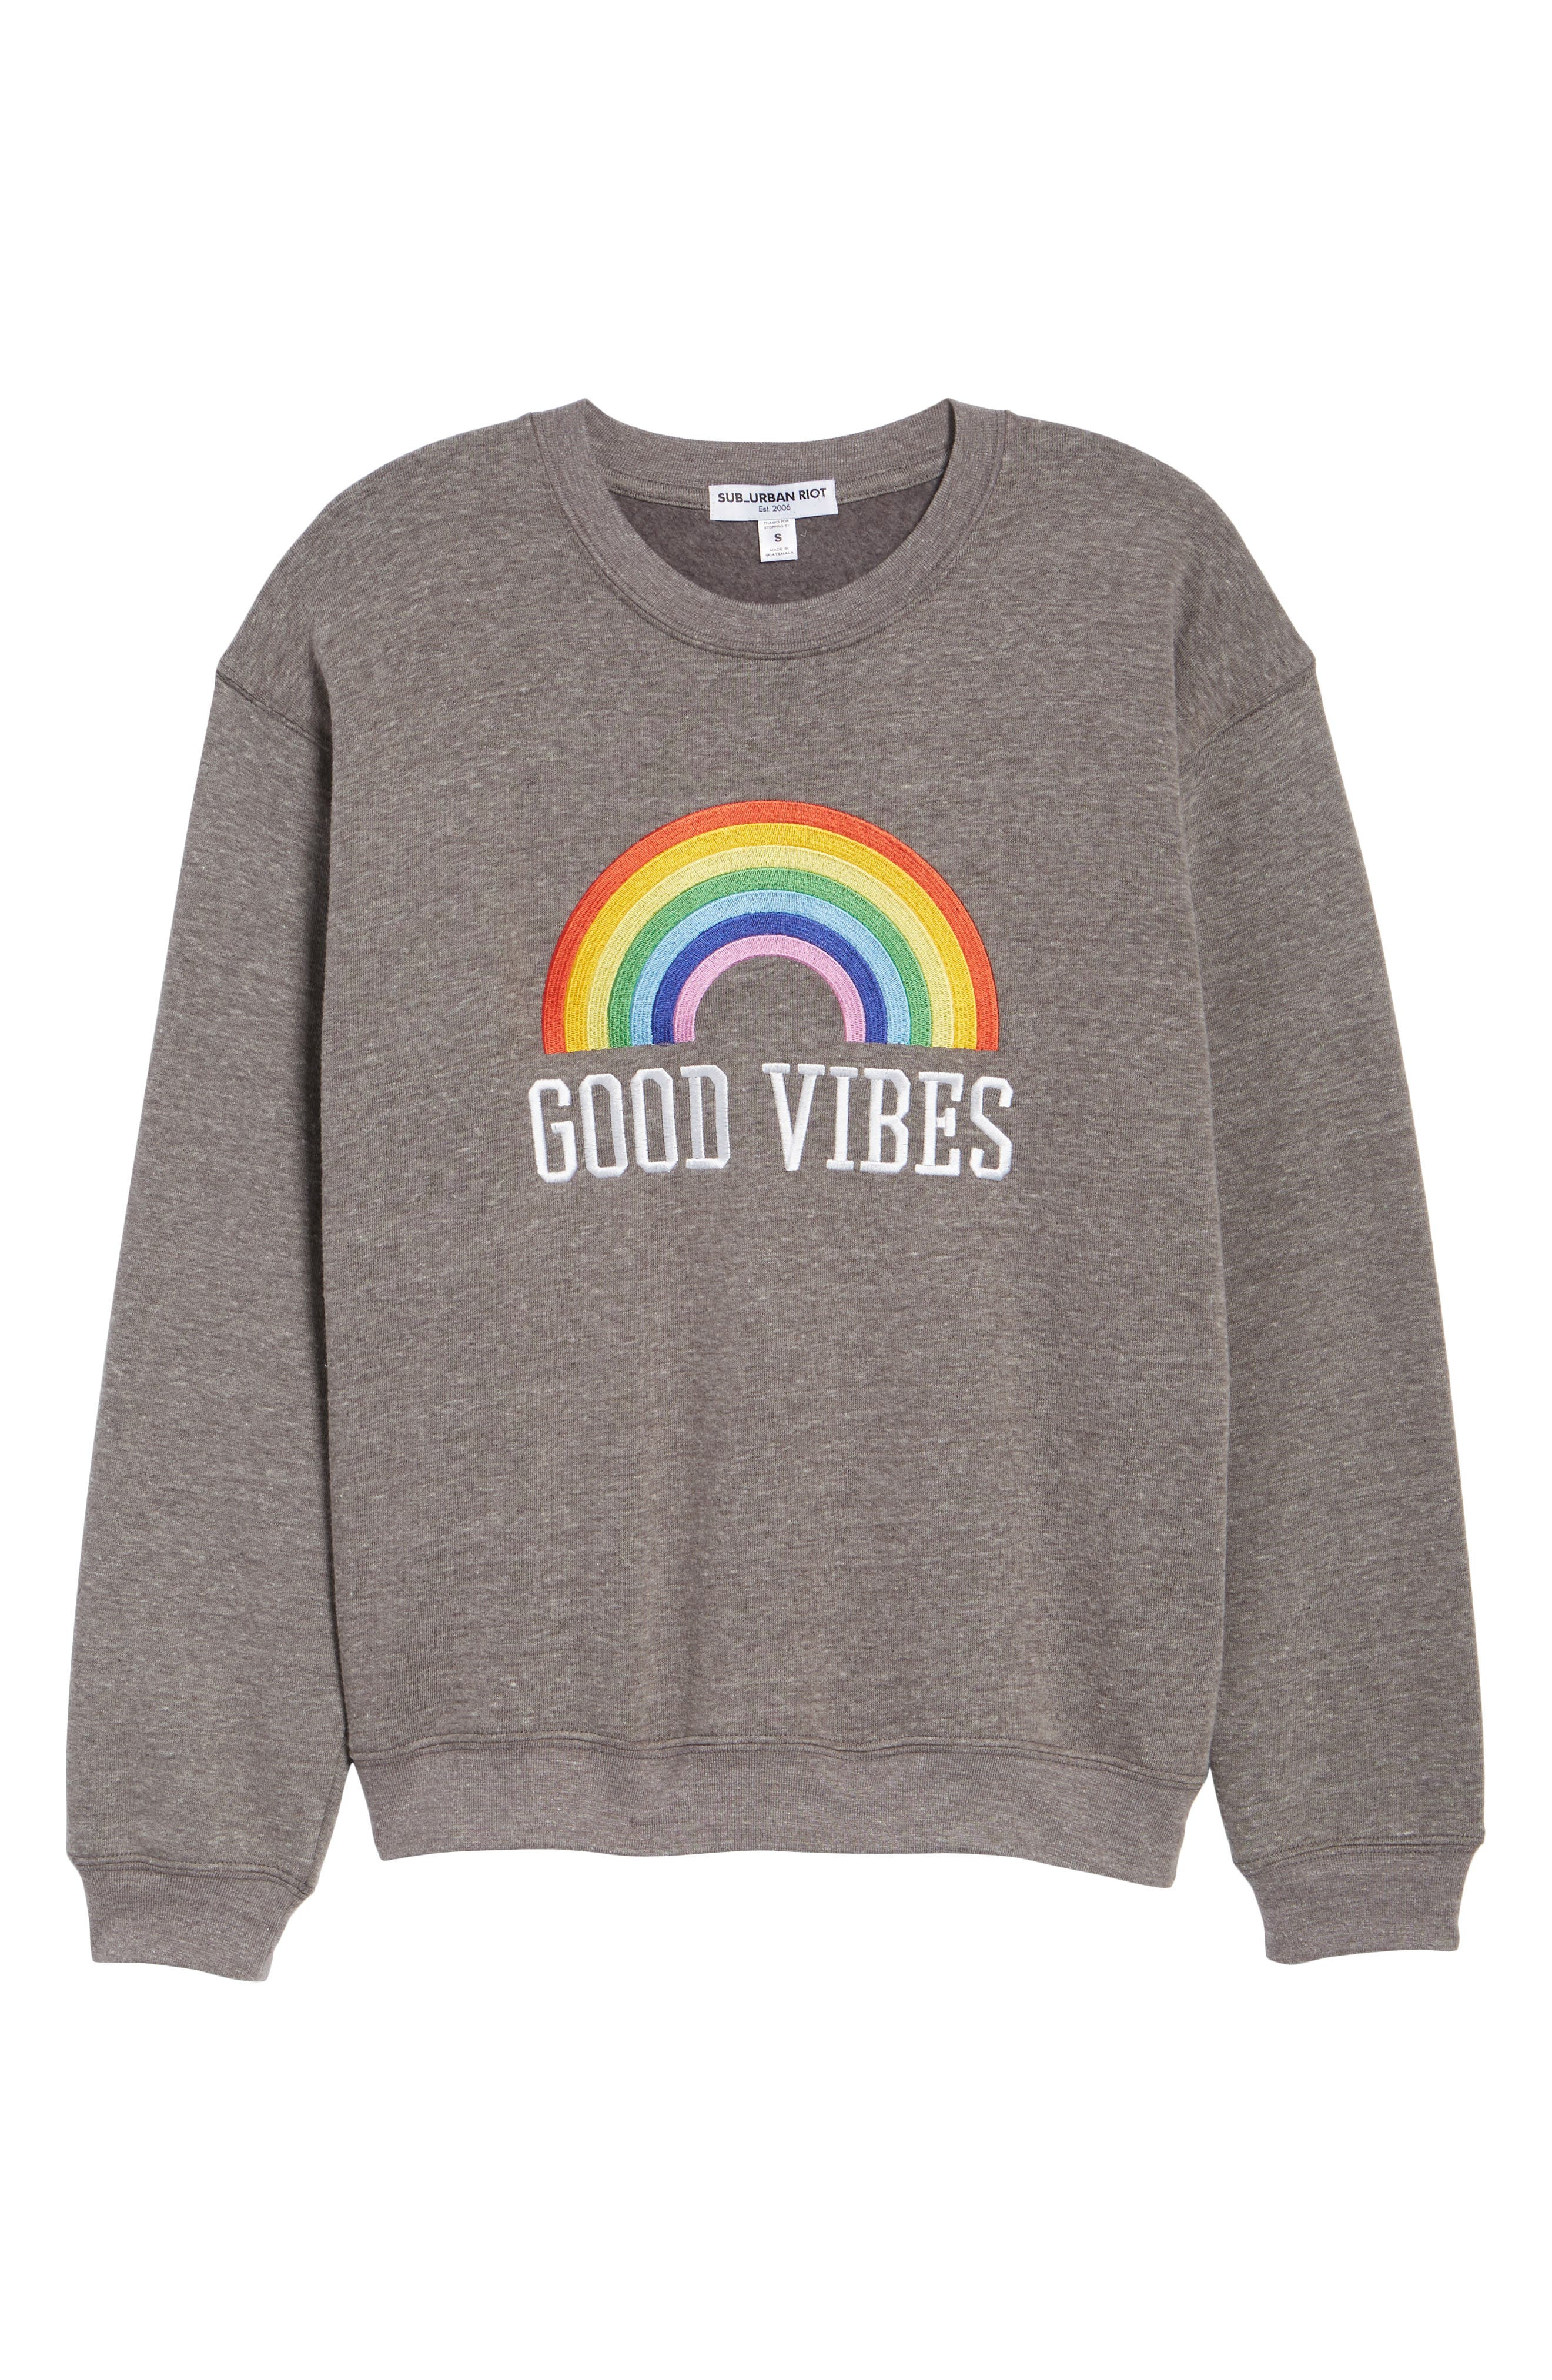 SUB_URBAN RIOT,                             Good Vibes Rainbow Sweatshirt,                             Alternate thumbnail 7, color,                             050